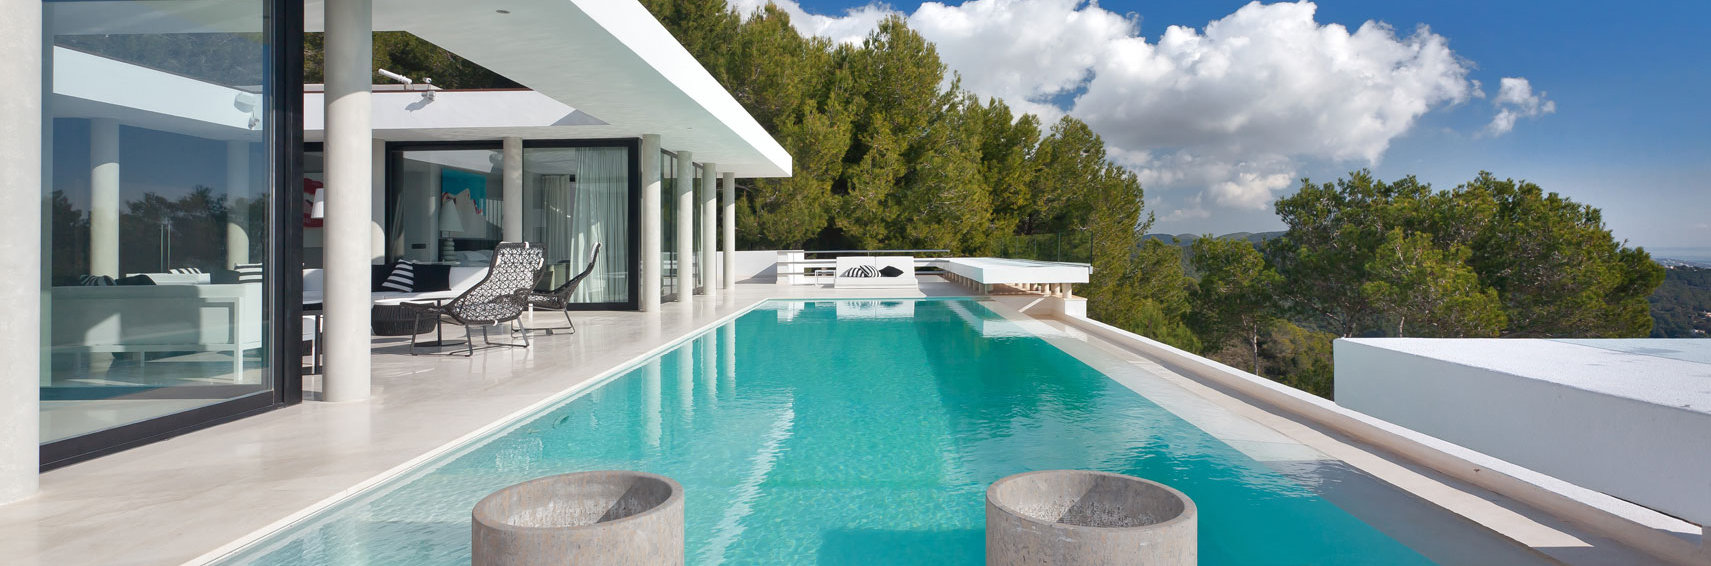 Essential Factors That You Need to Keep In Mind When Choosing a Villa Rental